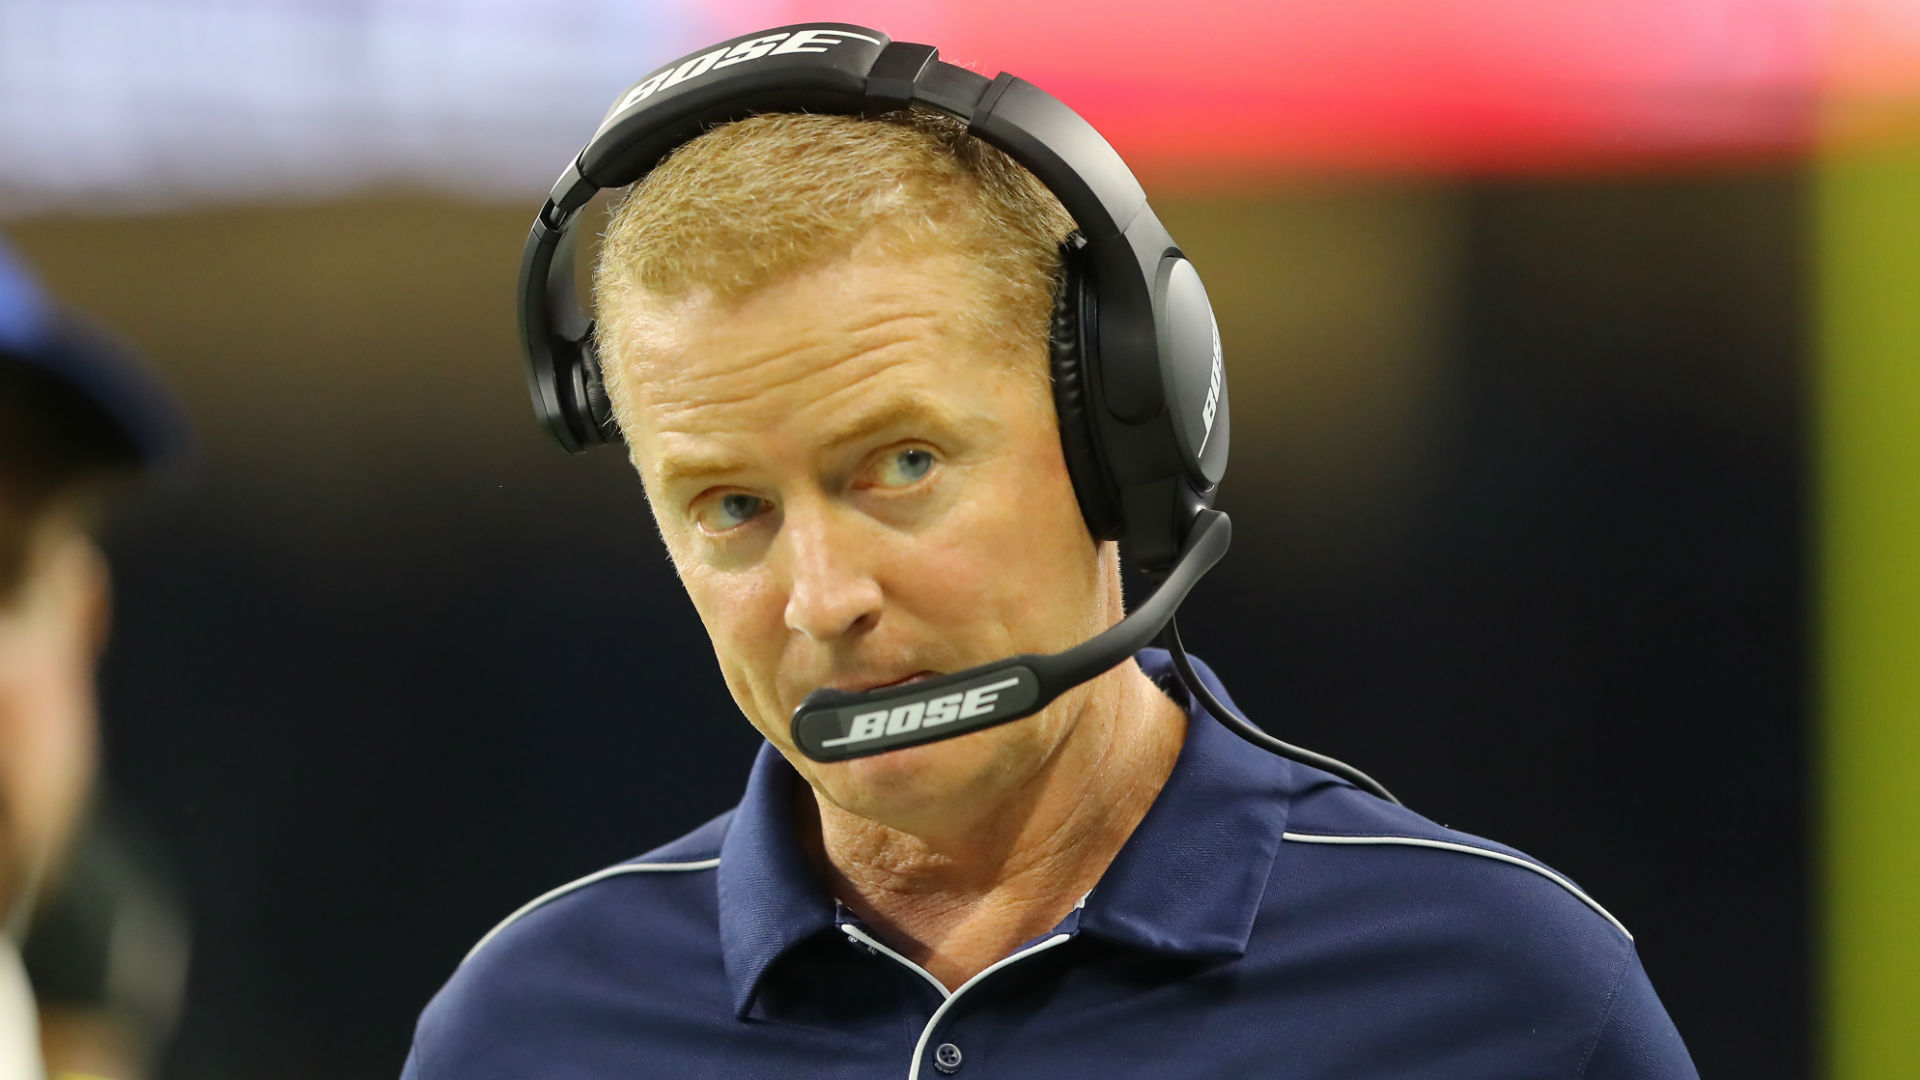 Jason Garrett will coach in the NFL in 2020, according to Jerry Jones, who stopped short of saying whether he will be with the Cowboys.